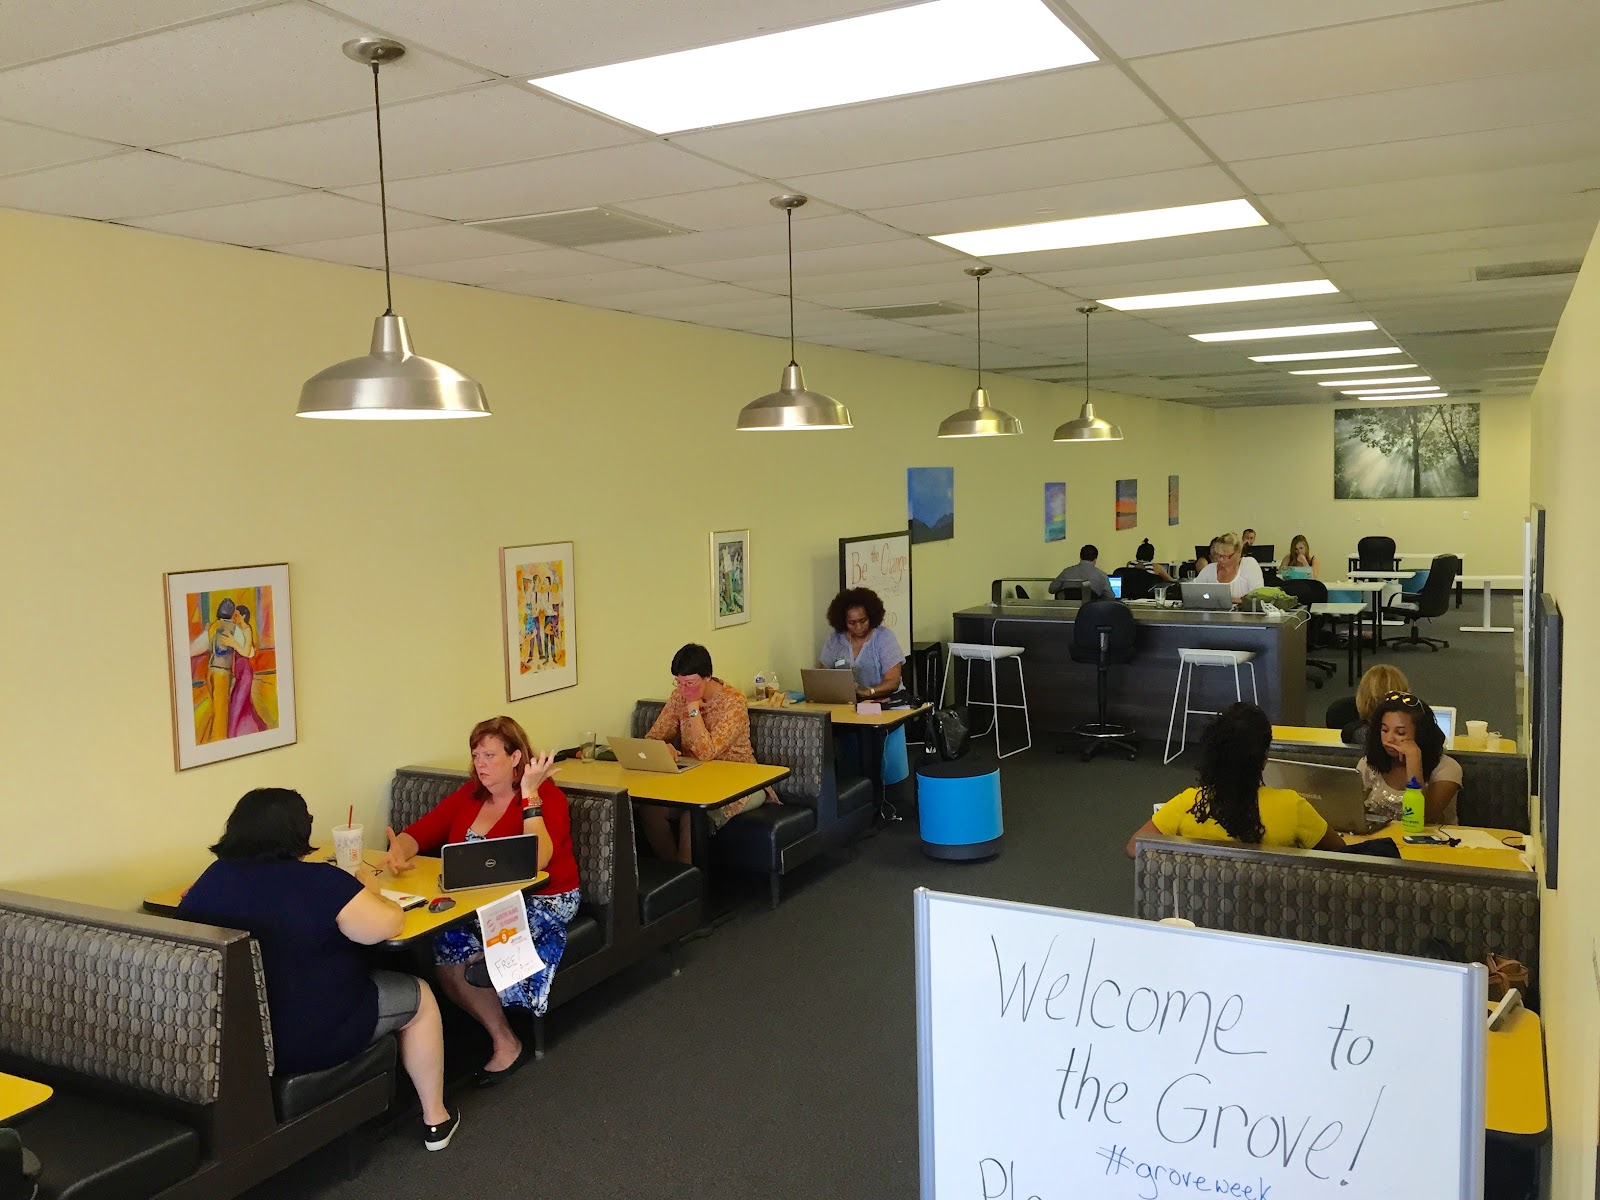 Coworking Space Austin: 15 Best Spaces with Pricing, Amenities & Location [2021] 38